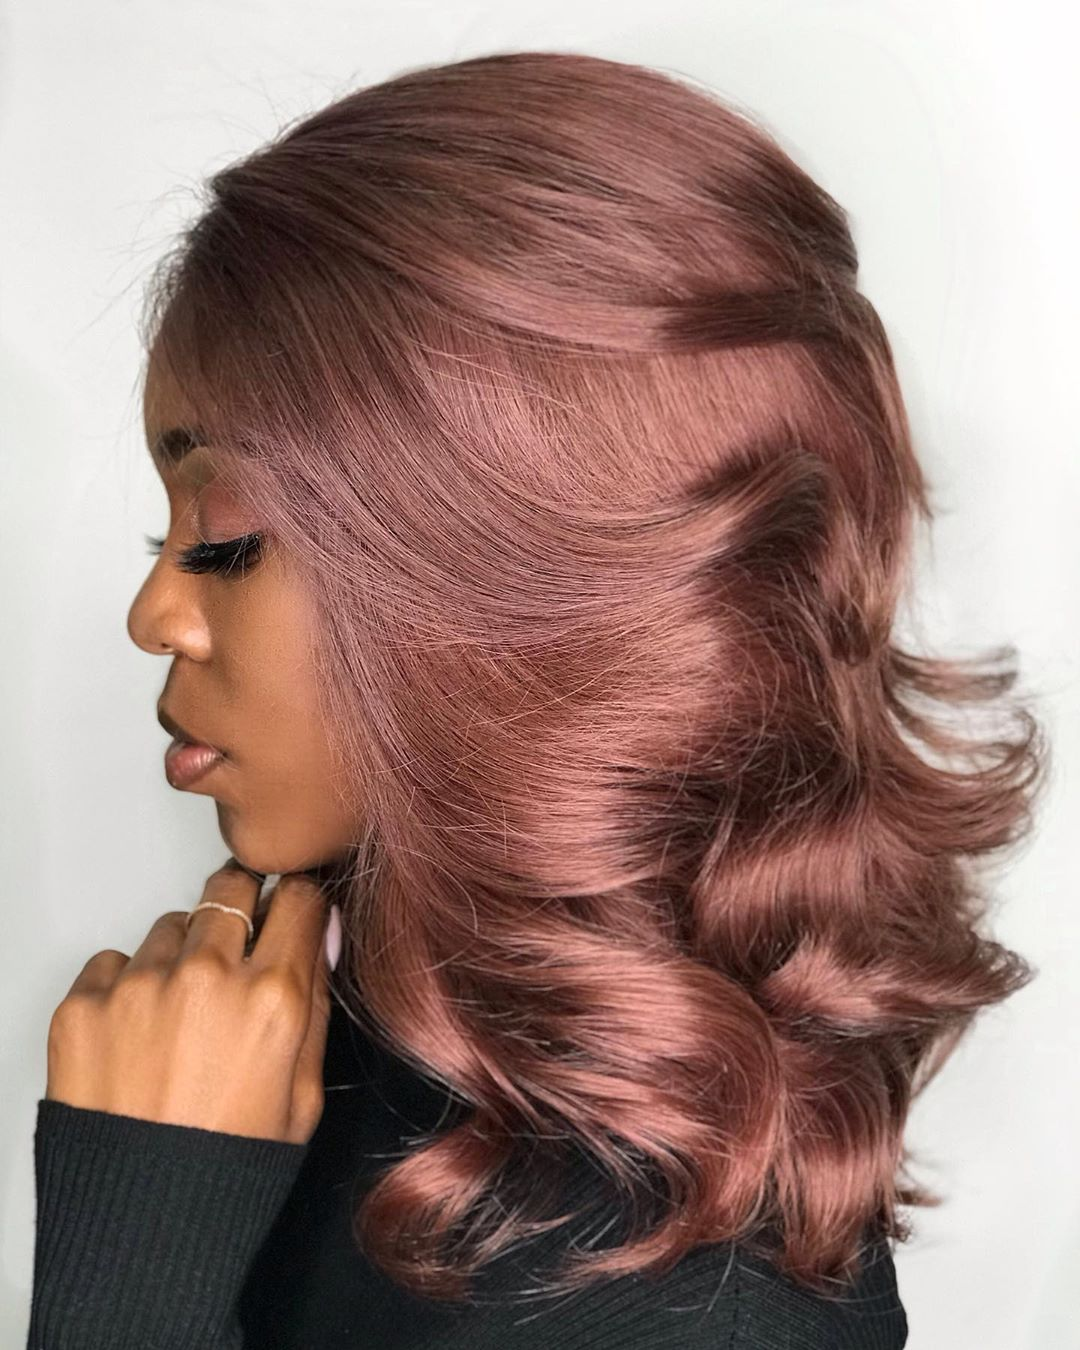 Hair Colors For Dark Skin To Look Even More Gorgeous Hair Adviser